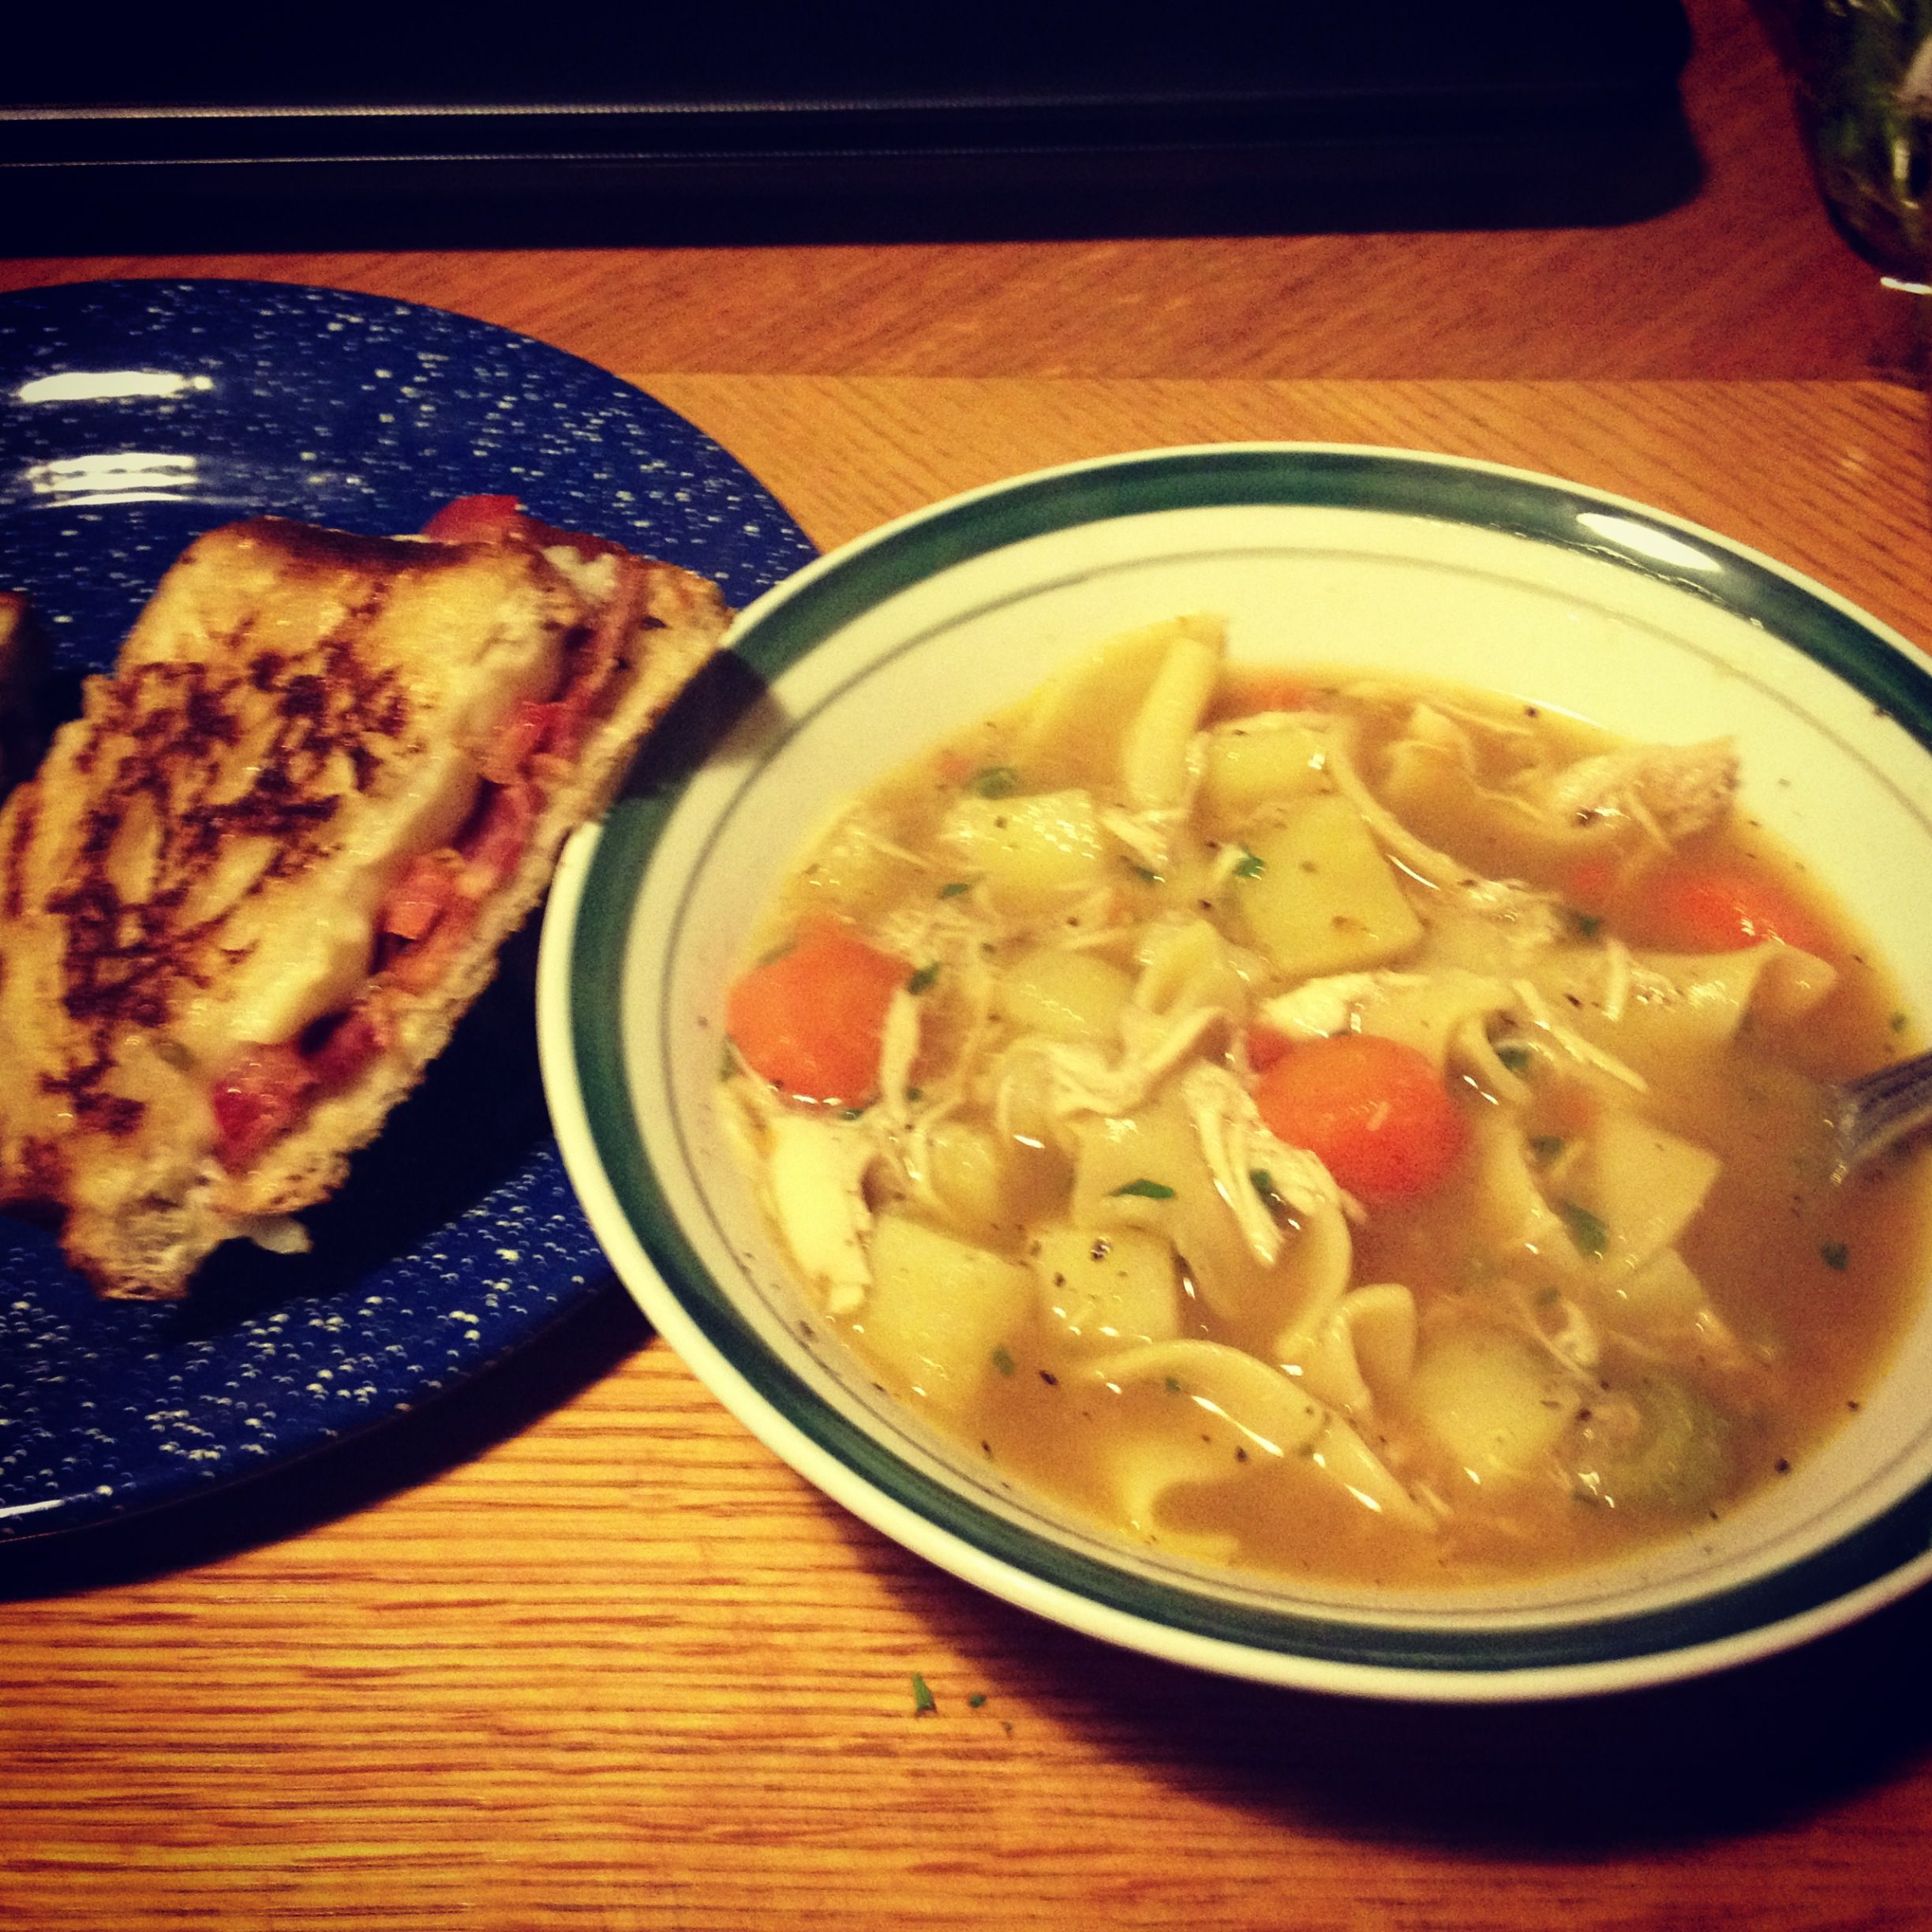 #homemade #chickennoodlesoup  #BTC #Bacontomato #americancheese #muenster cheese